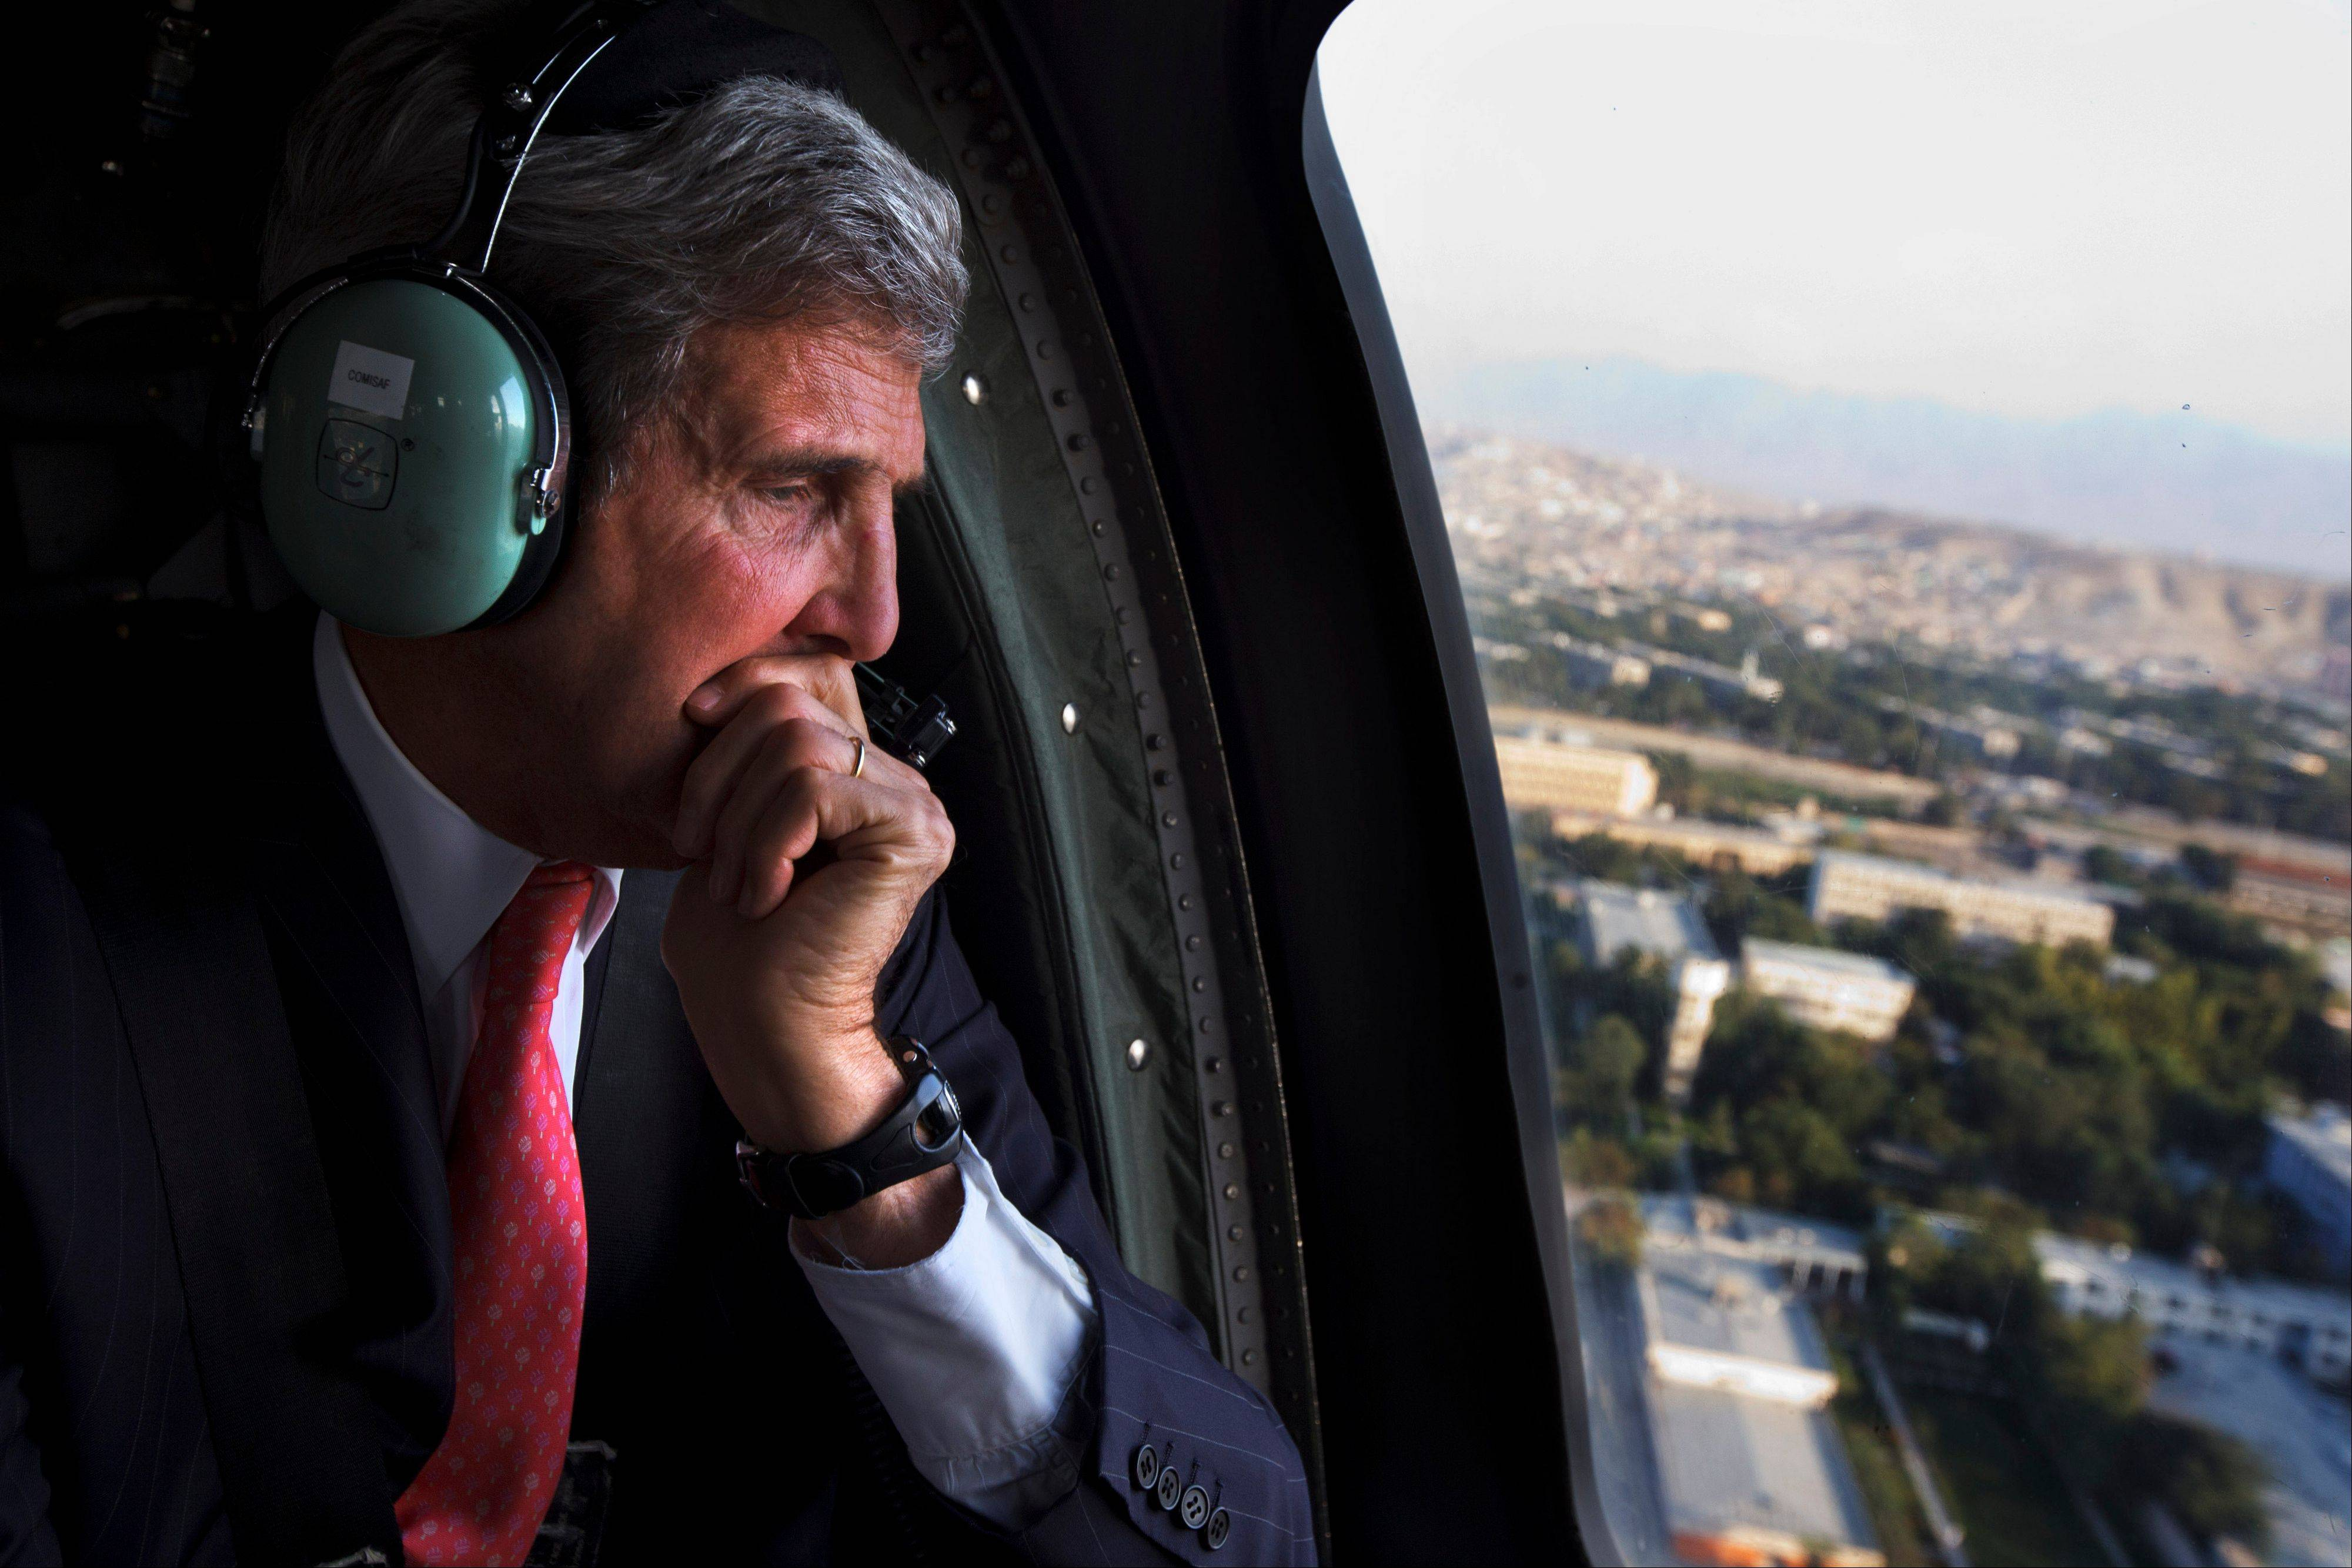 Associated Press/Oct. 11, 2013Secretary of State John Kerry looks out the window en route to the ISAF headquarters after an unannounced visit to Kabul, Afghanistan. President Barack Obama and Kerry are trying to quell international anger over the latest classified disclosures about NSA tactics.